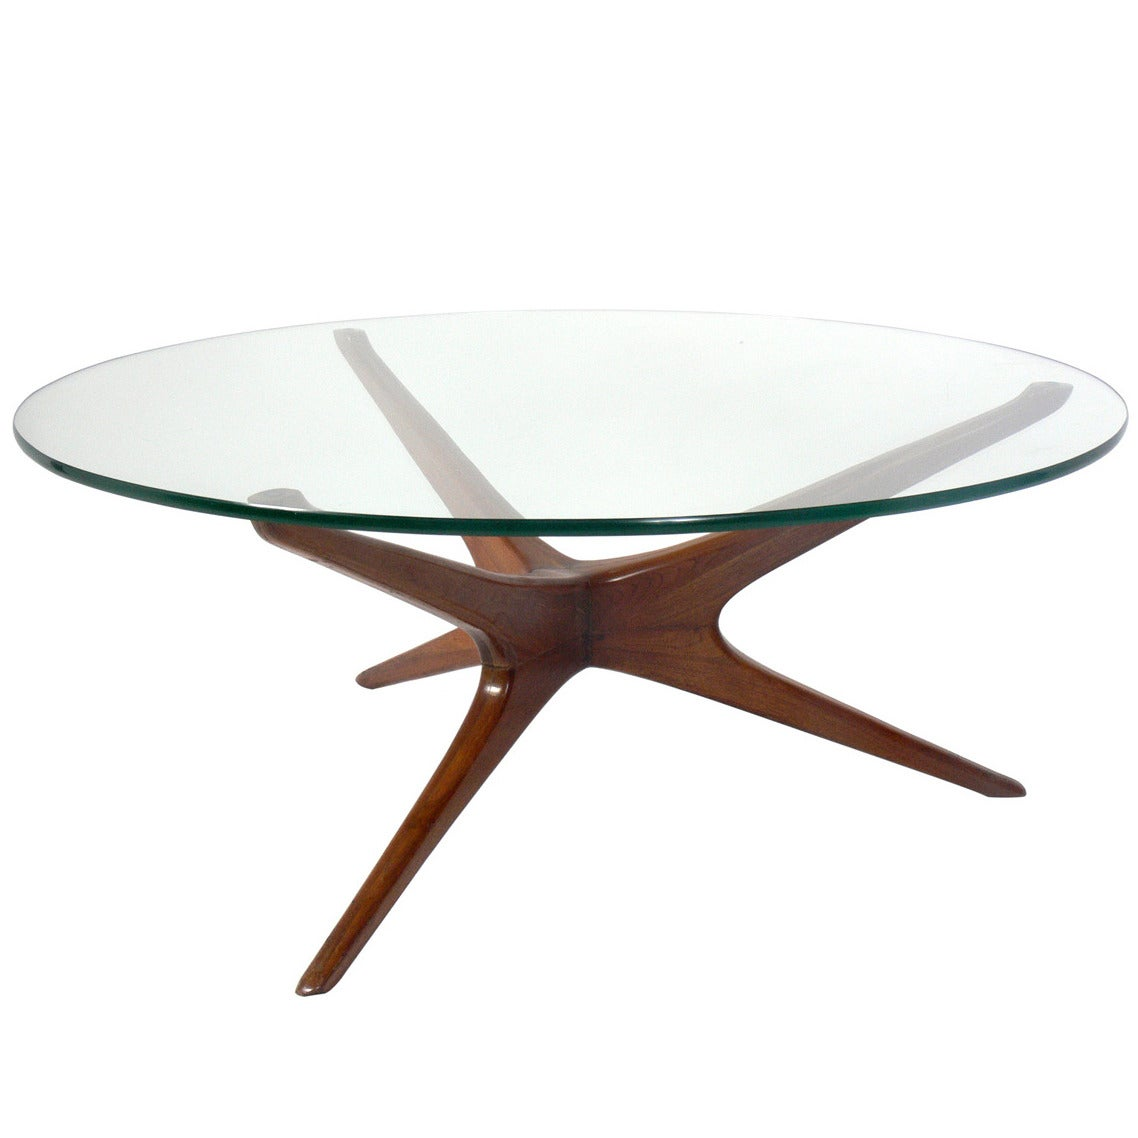 Vladimir Kagan Trisymmetric Walnut Coffee Table At 1stdibs